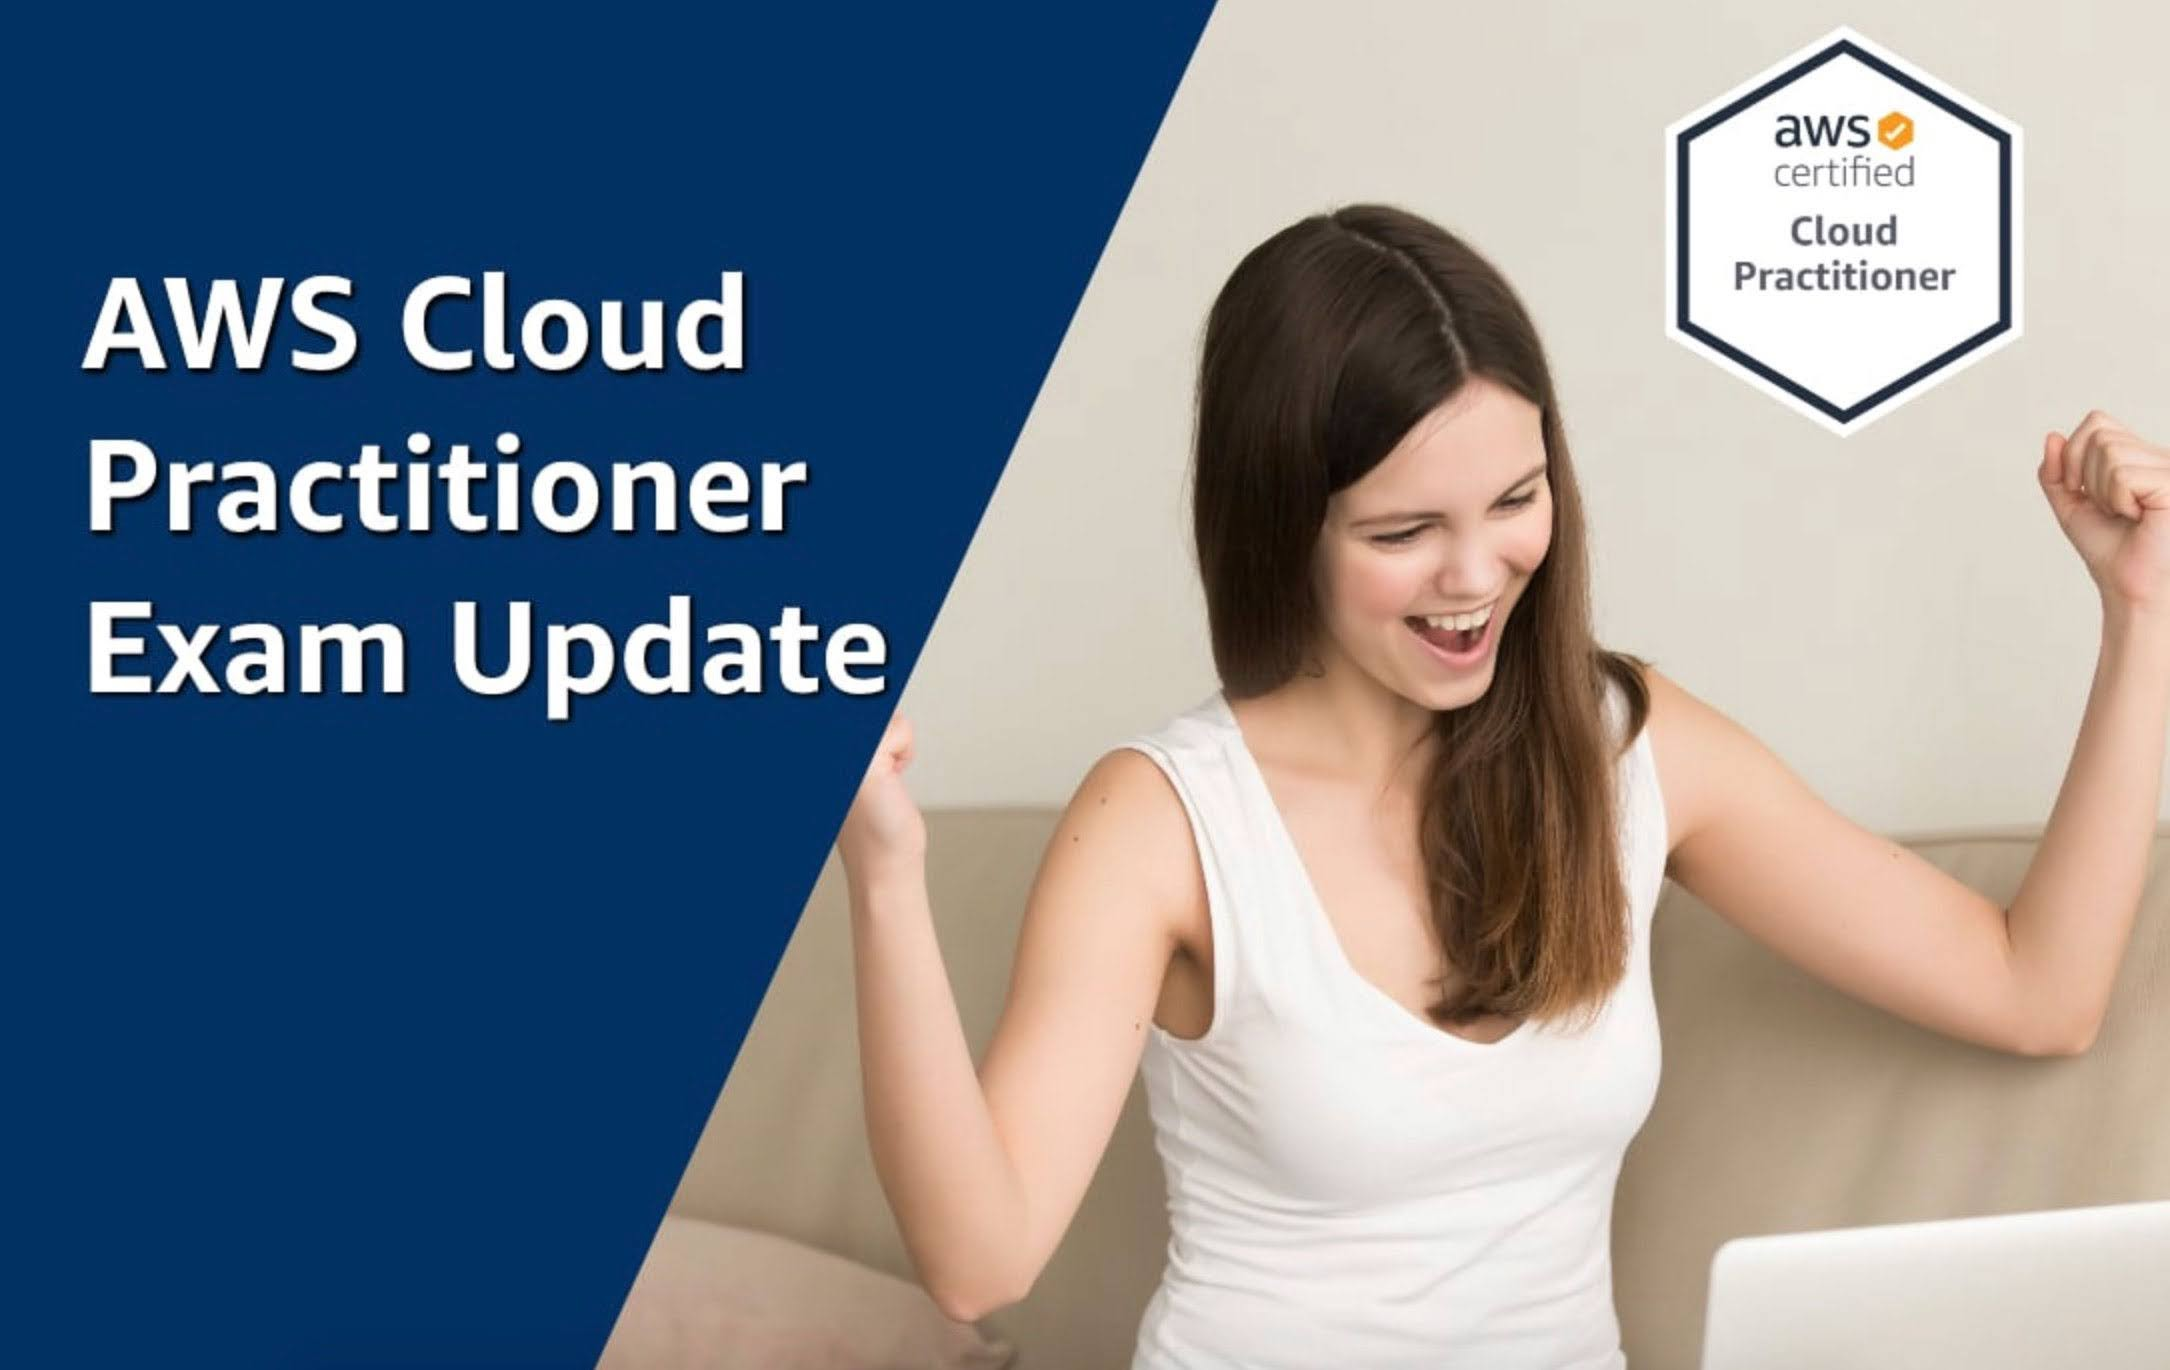 CLF-C01 AWS Certified Cloud Practitioner Exam Questions and Answers - Page 1